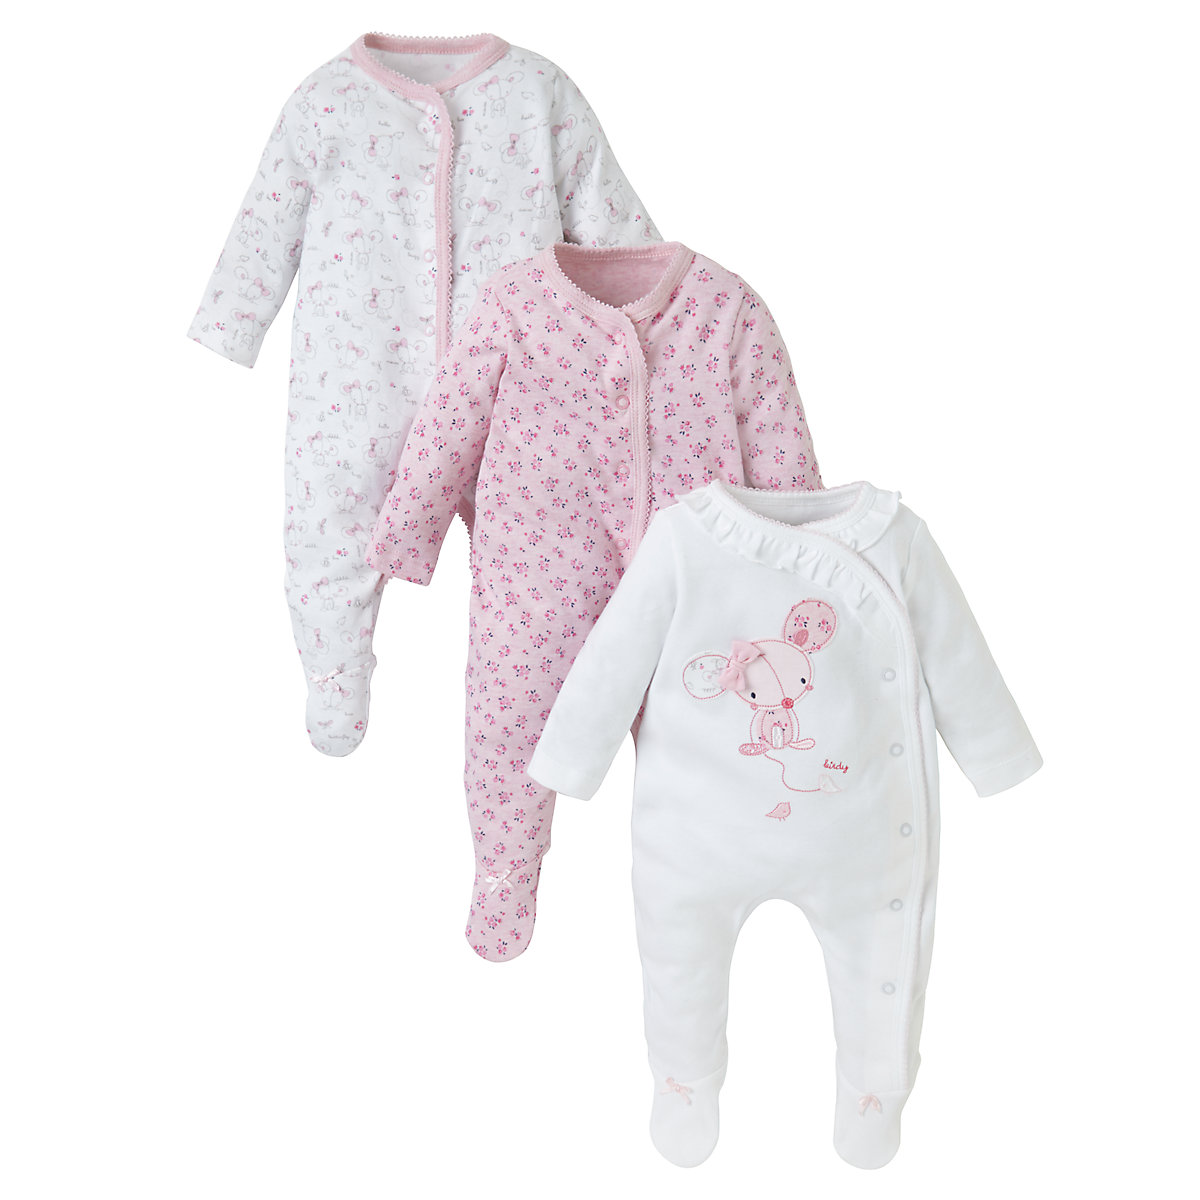 Mothercare Newborns Mouse Sleepsuits - 3 Pack Size tiny